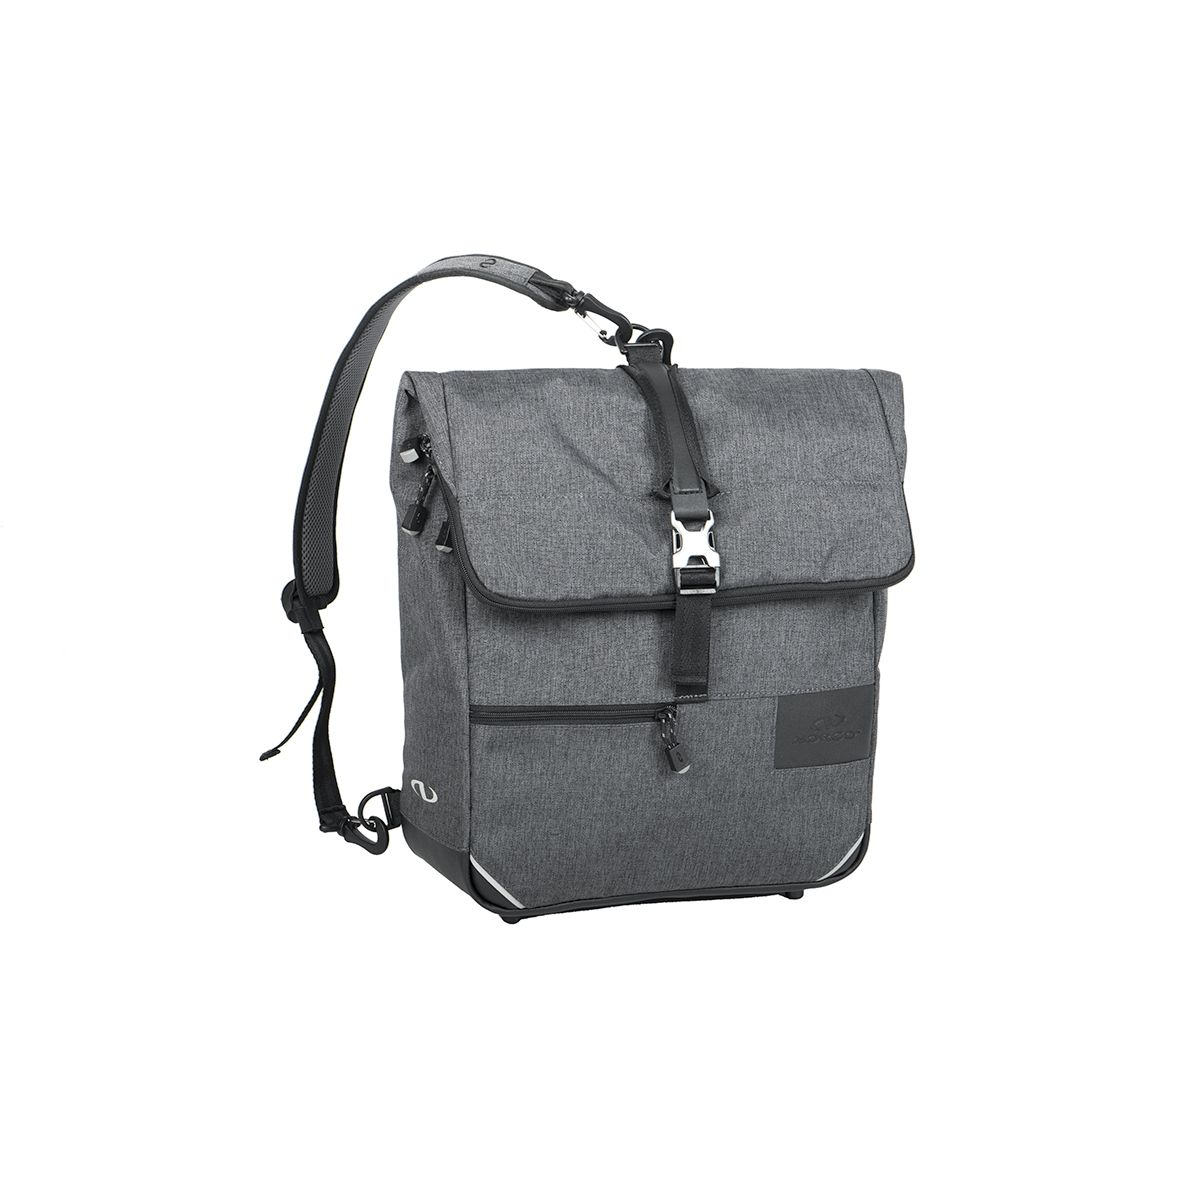 PORTREE BACKPACK PANNIER